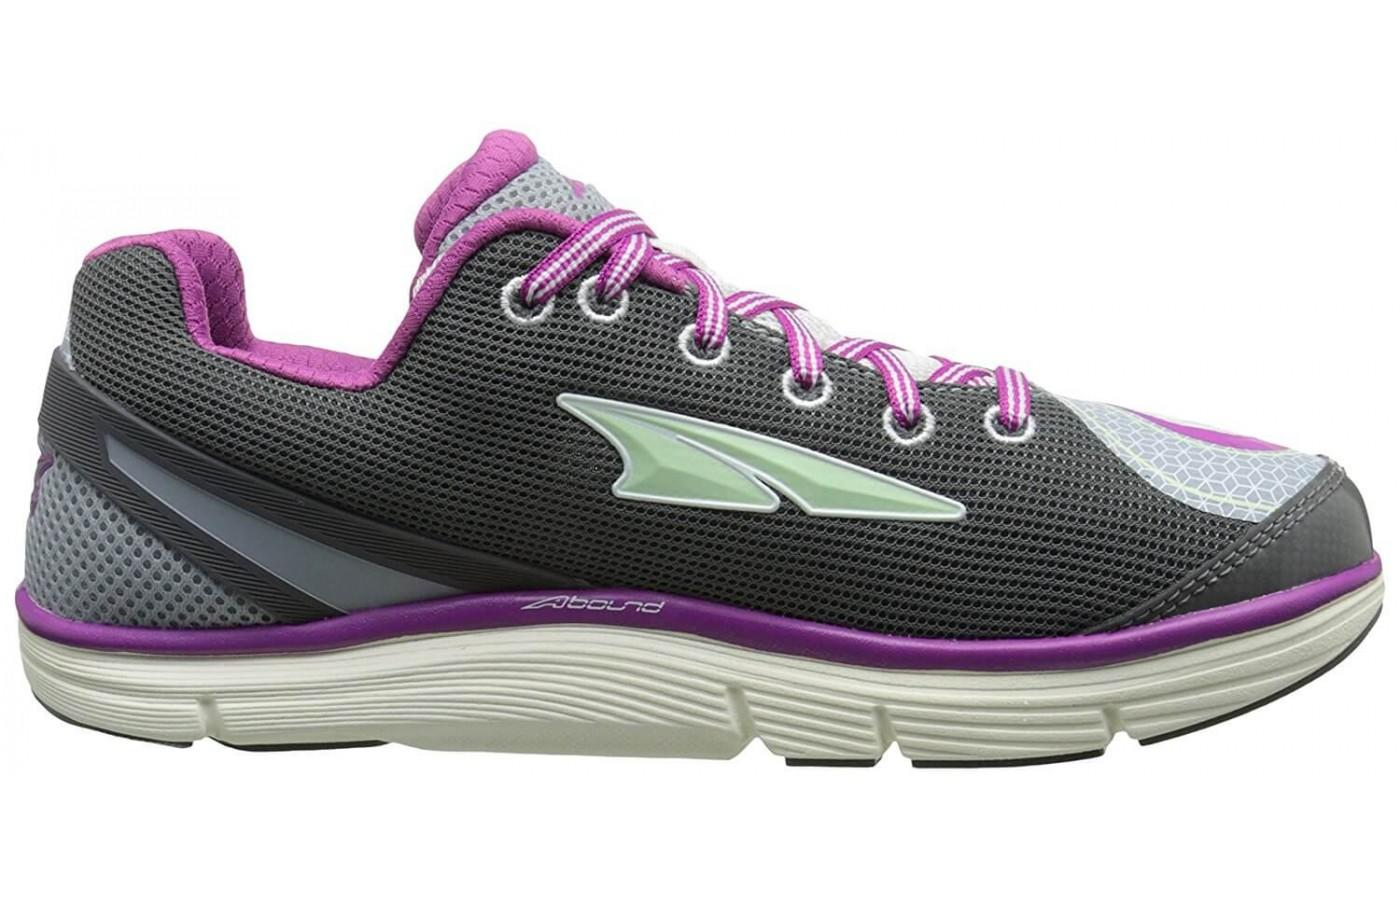 a side review of the Altra Intuition 3.5